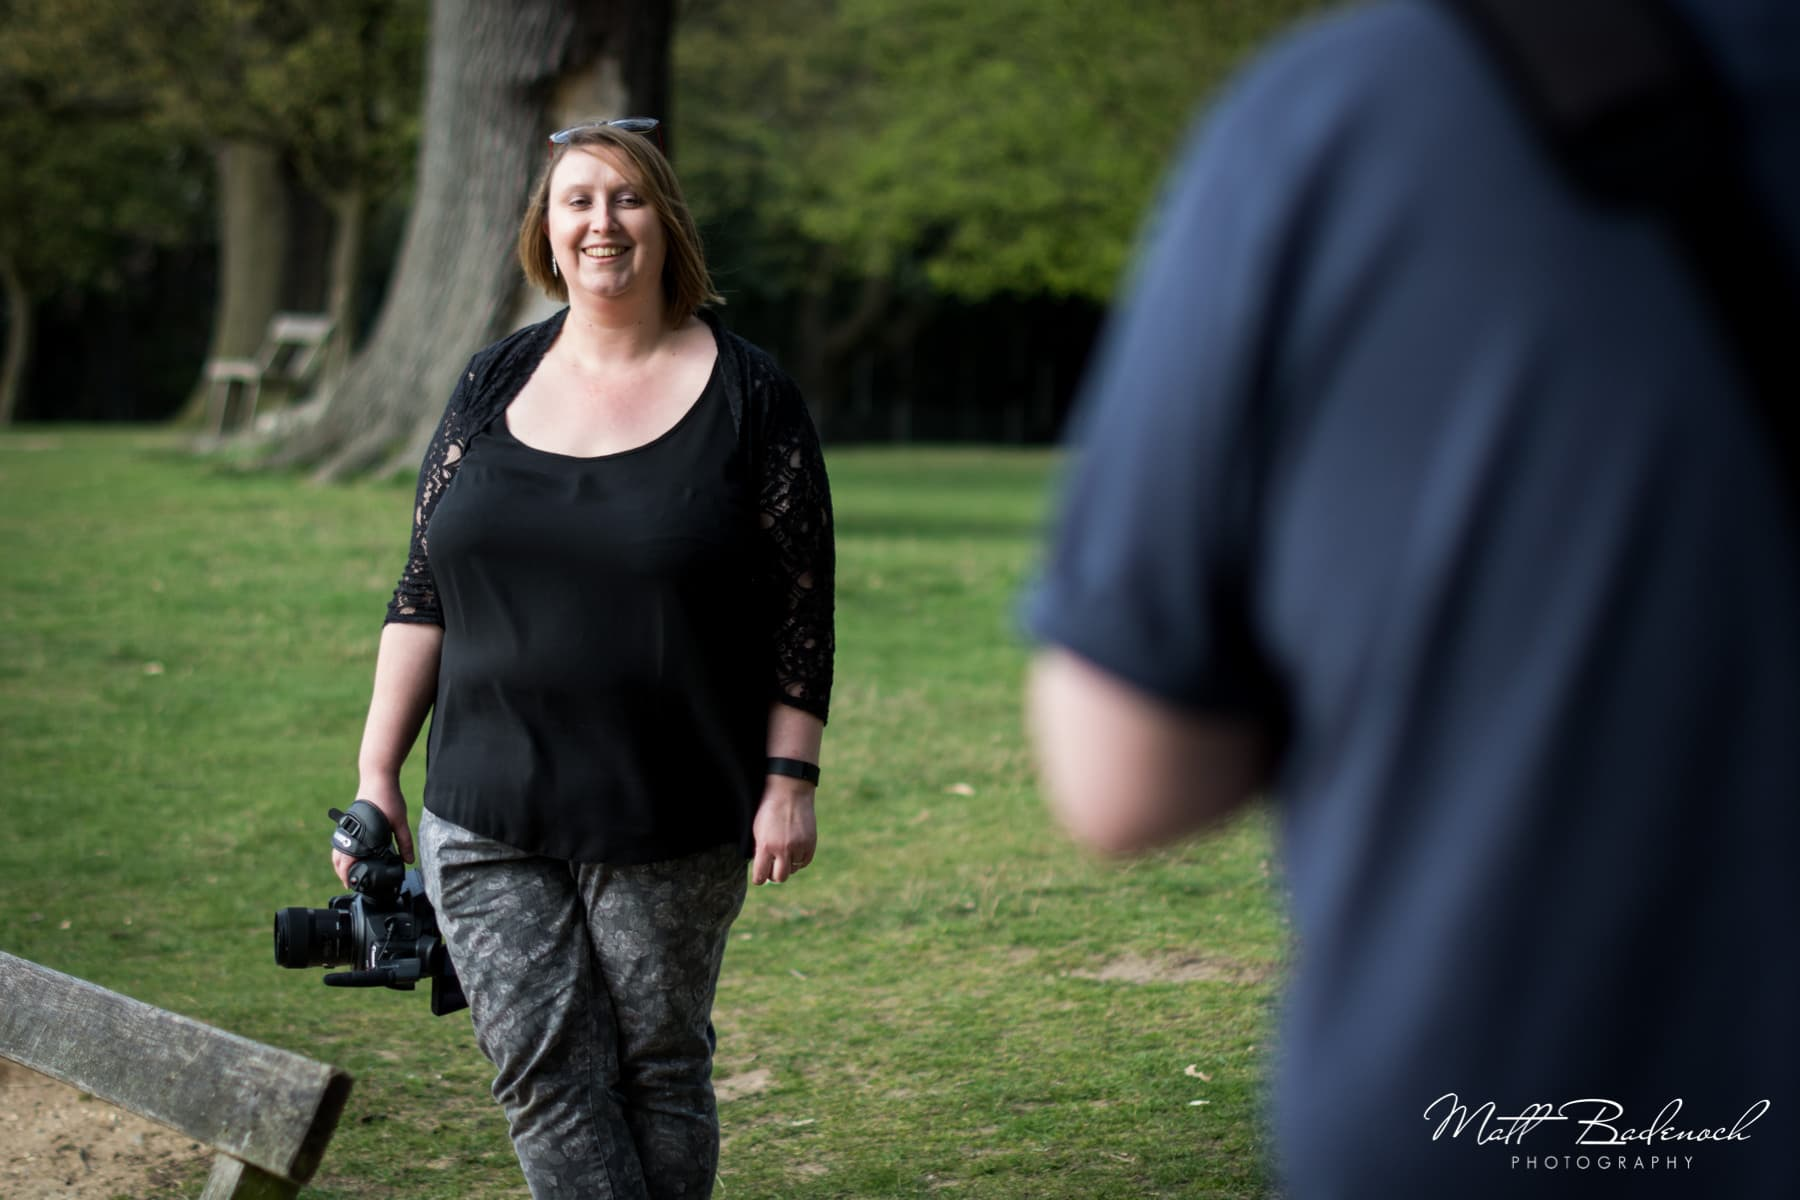 Julie, Minty Slippers London Wedding Videographer | Matt Badenoch Photography